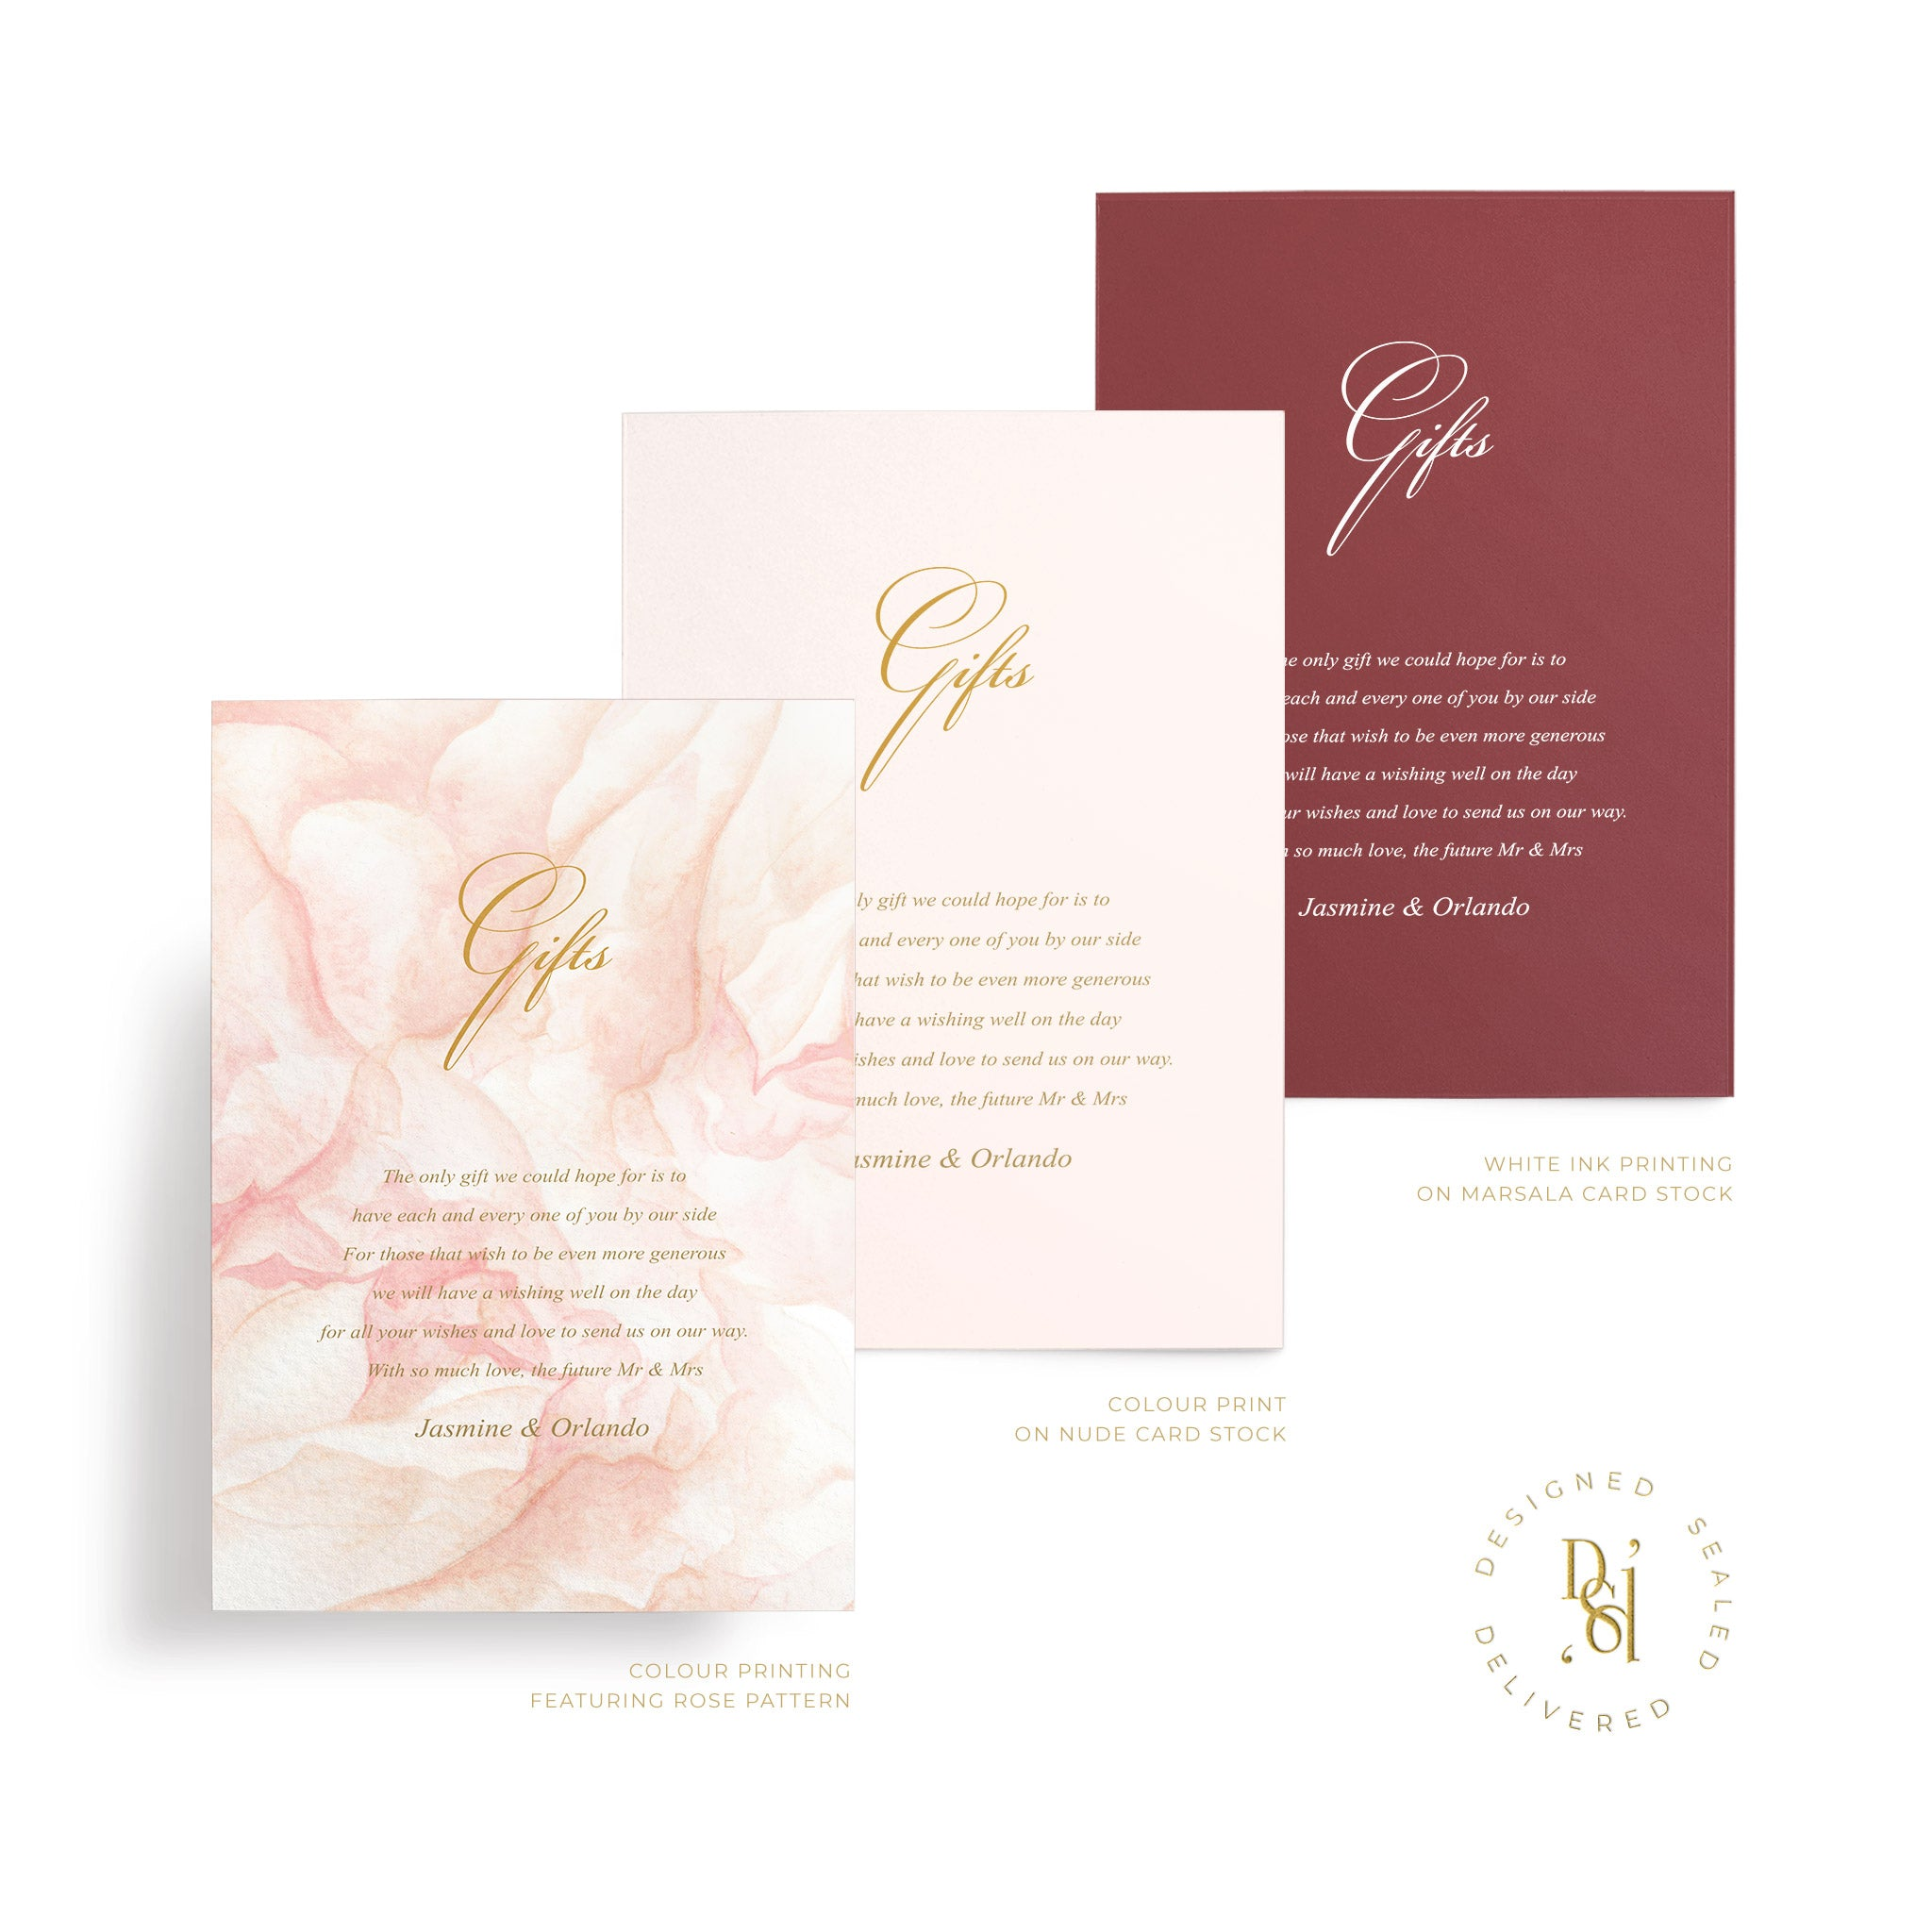 Rosé Collection: Gift card in variety of print options; rosé pattern print, colour print, white ink